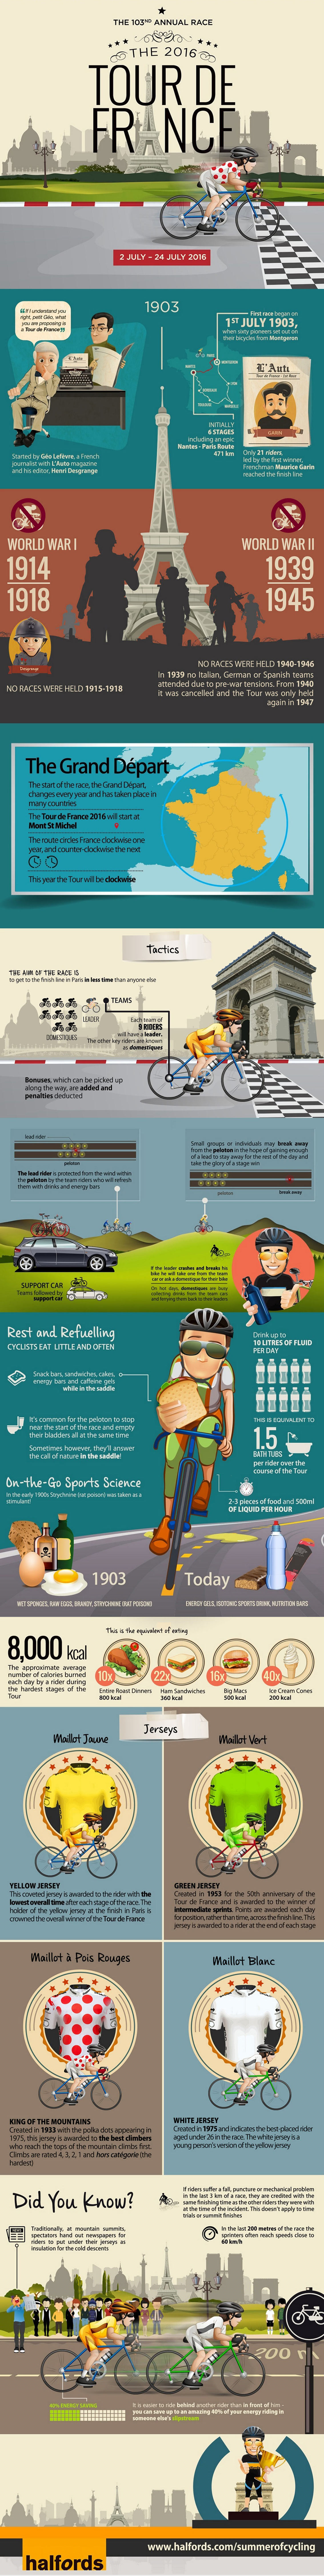 Guide to the 2016 Tour de France - Cycling Infographic